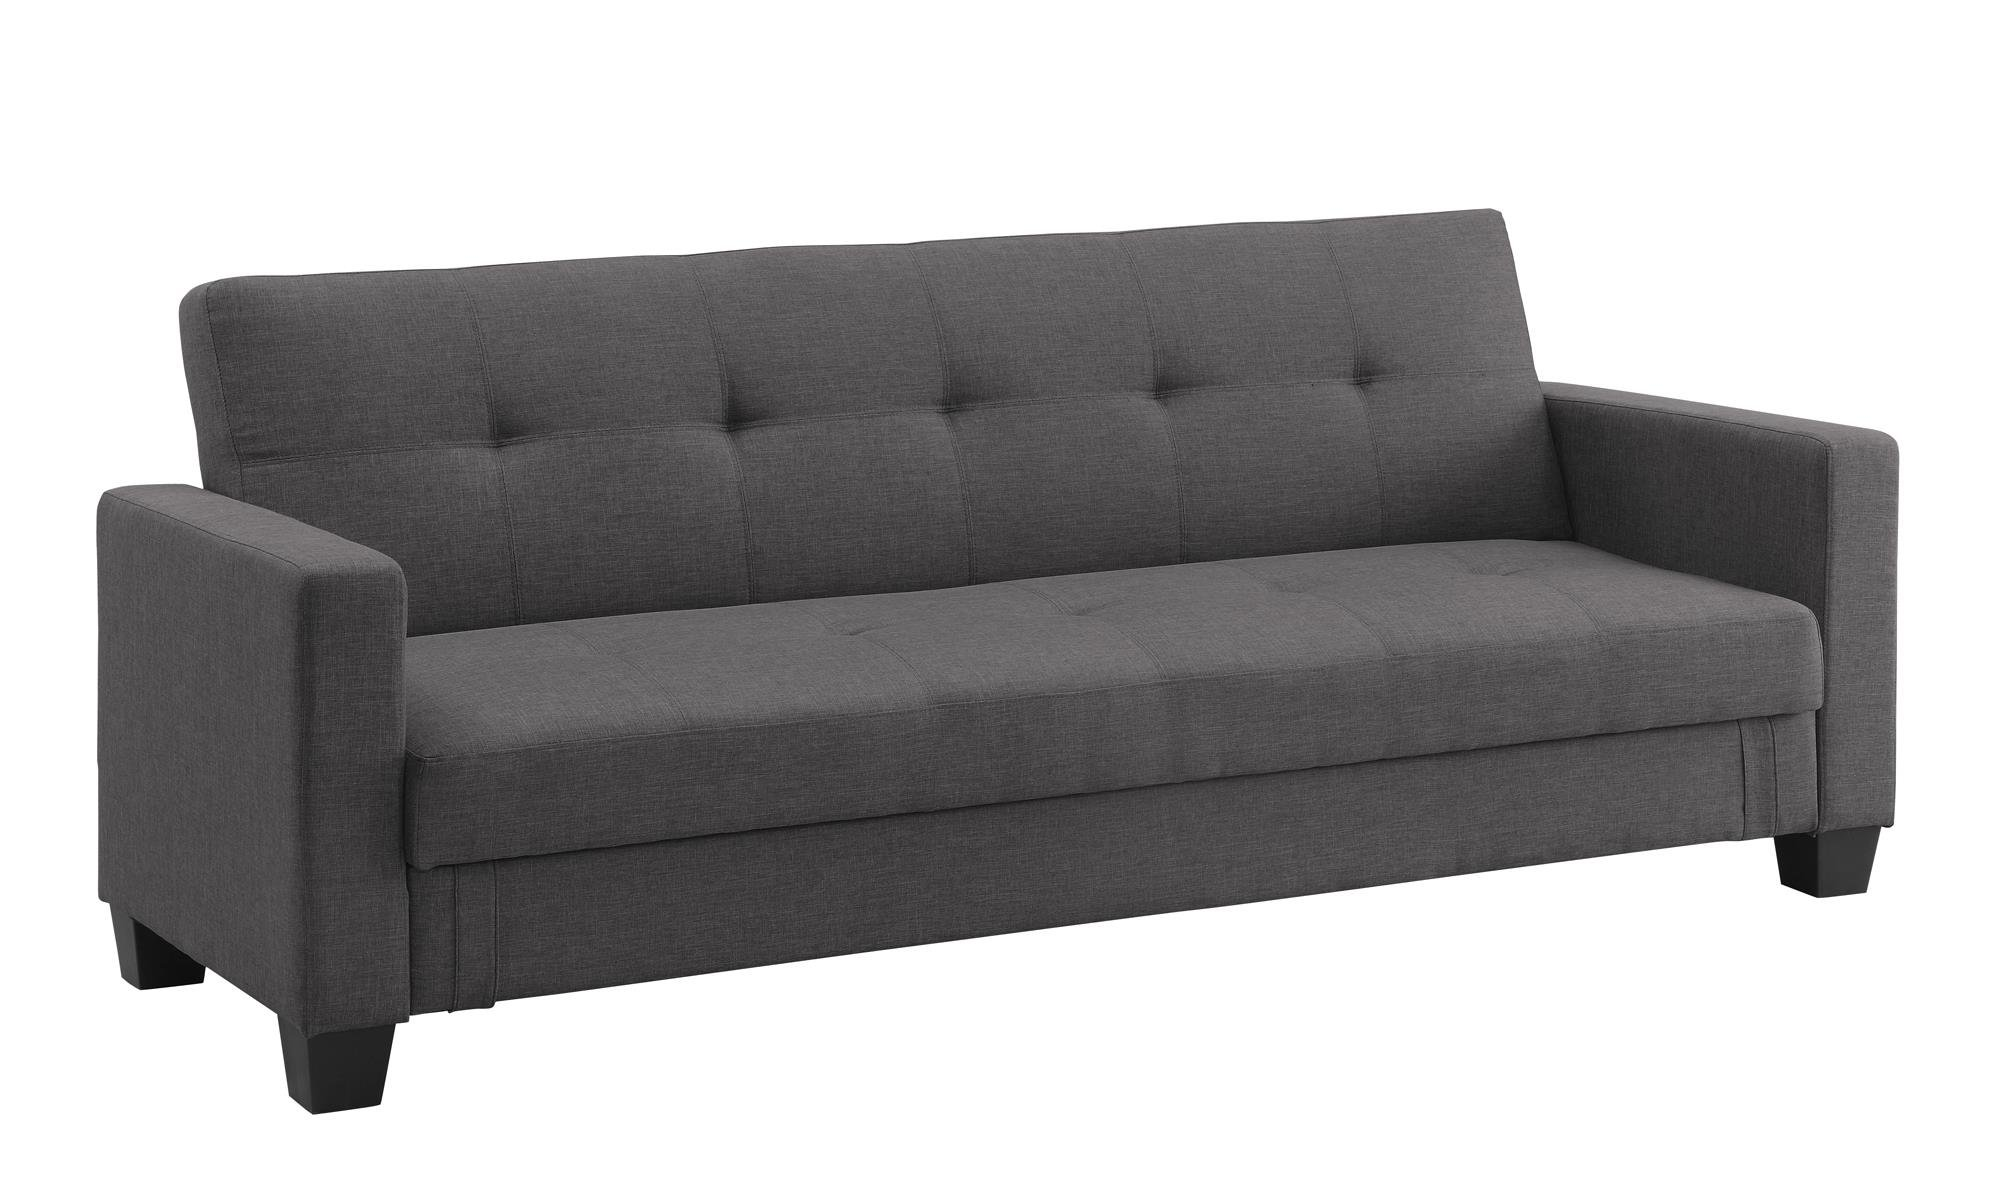 DHP Leighton Futon Couch with Hidden Storage, Full Size - Grey Linen by DHP